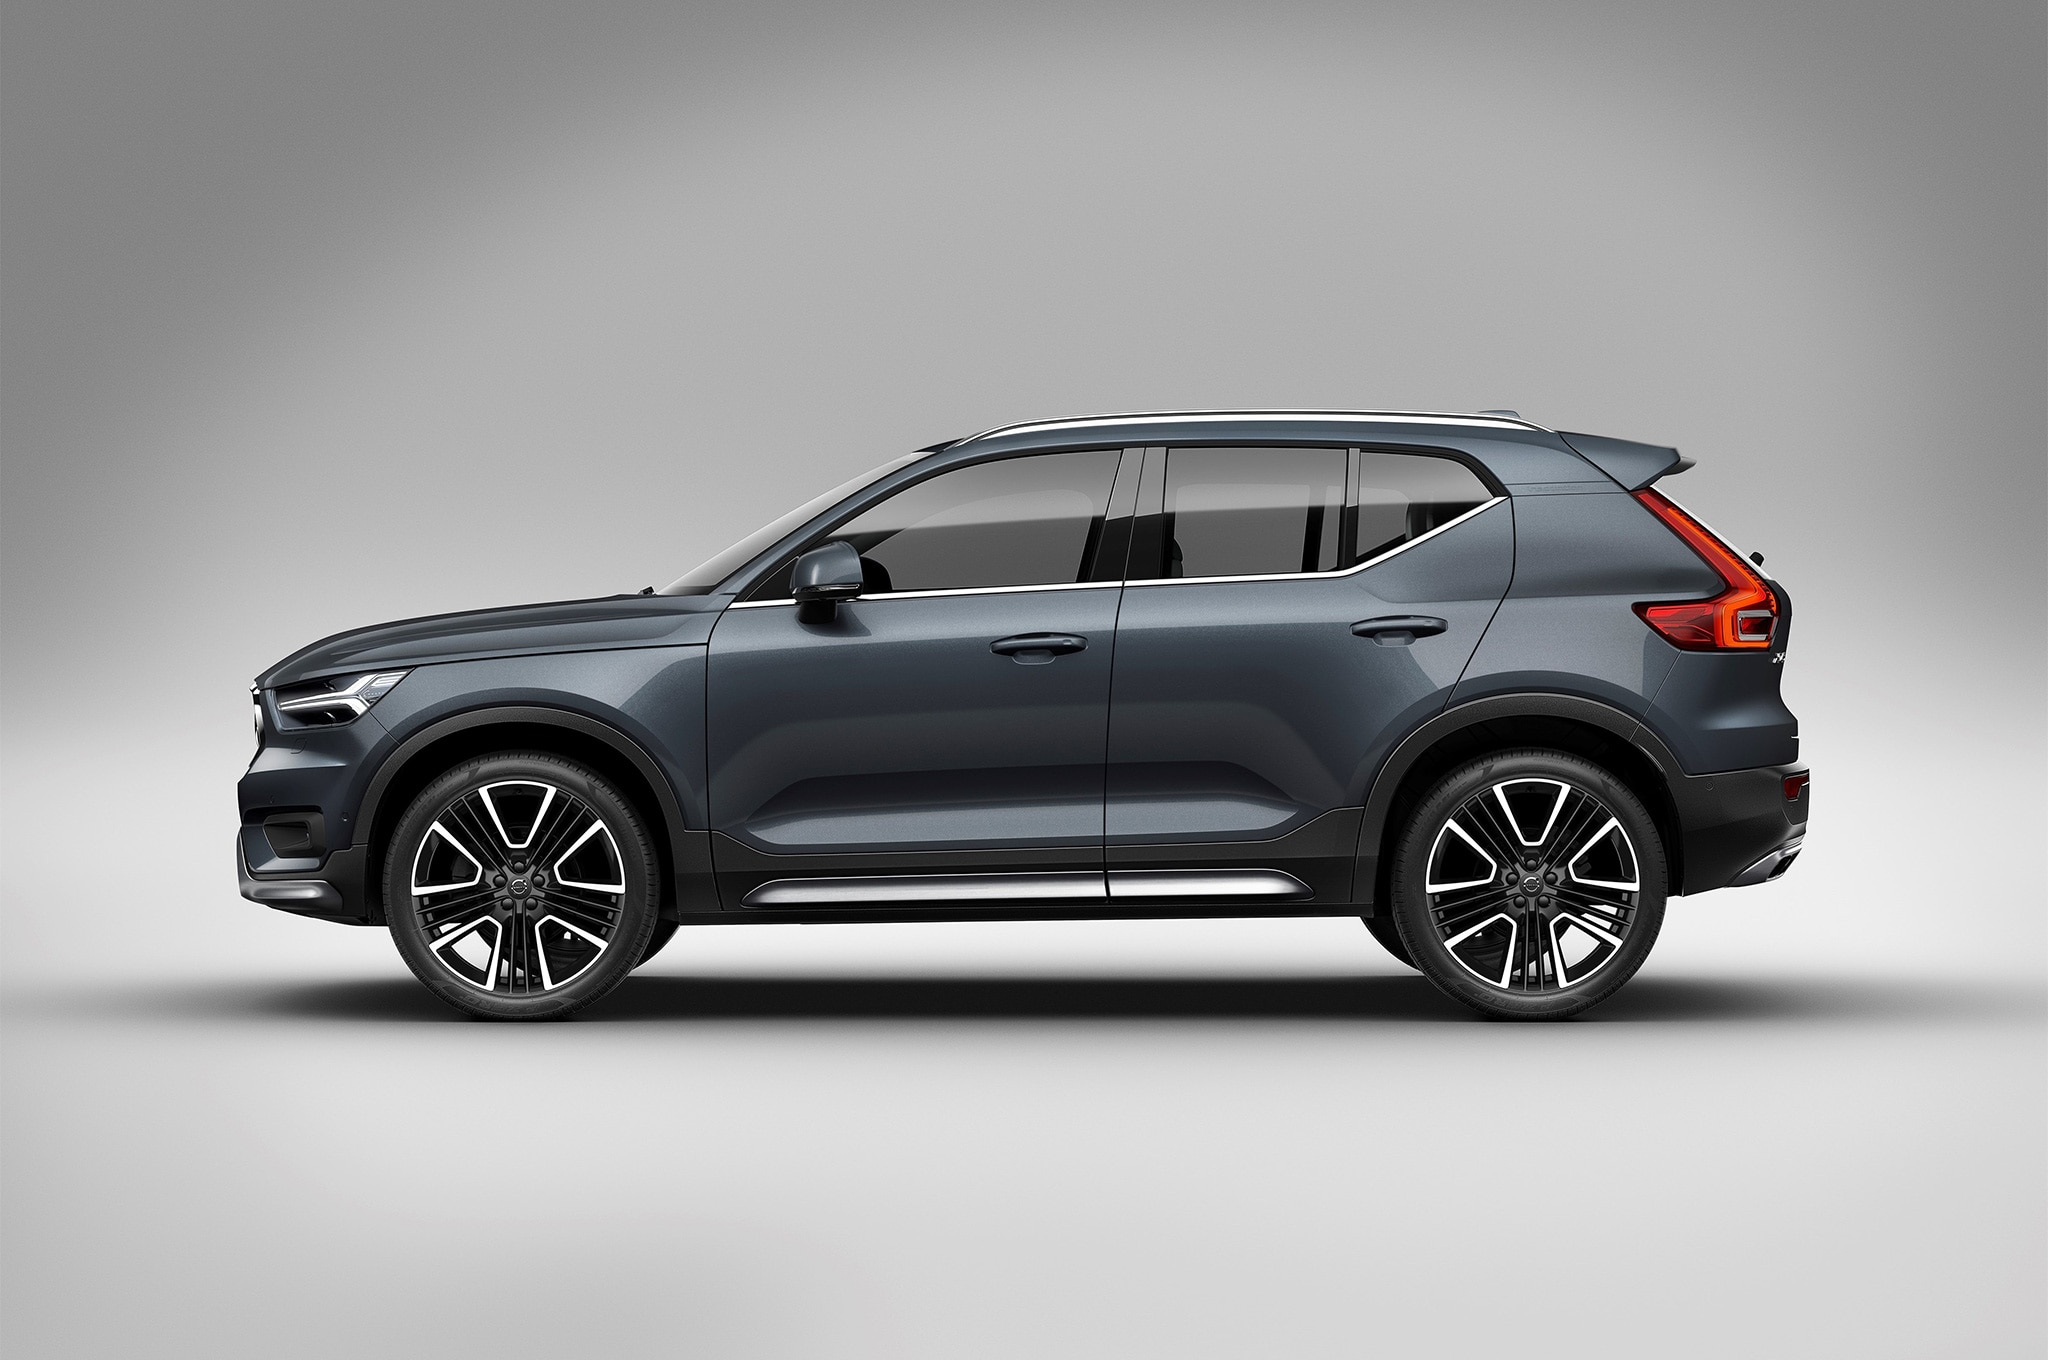 Volvo 40 1 Interior >> Volvo XC40 Getting All-Electric Variant and Inscription Model | Automobile Magazine